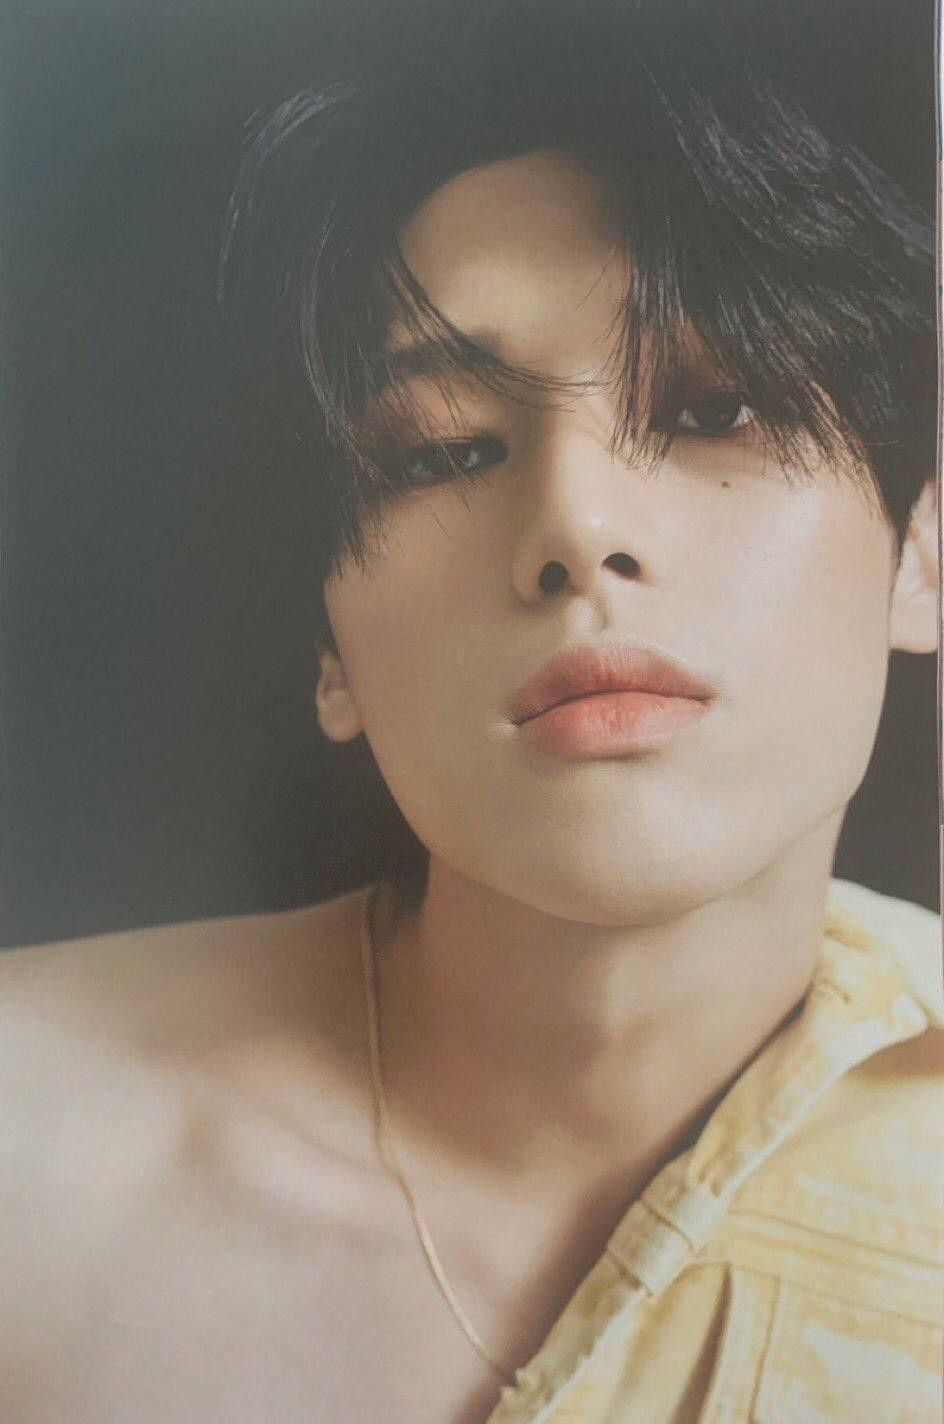 I Am Definitely Dead After This In 2020 Kpop Guys Star Magazine Woo Young